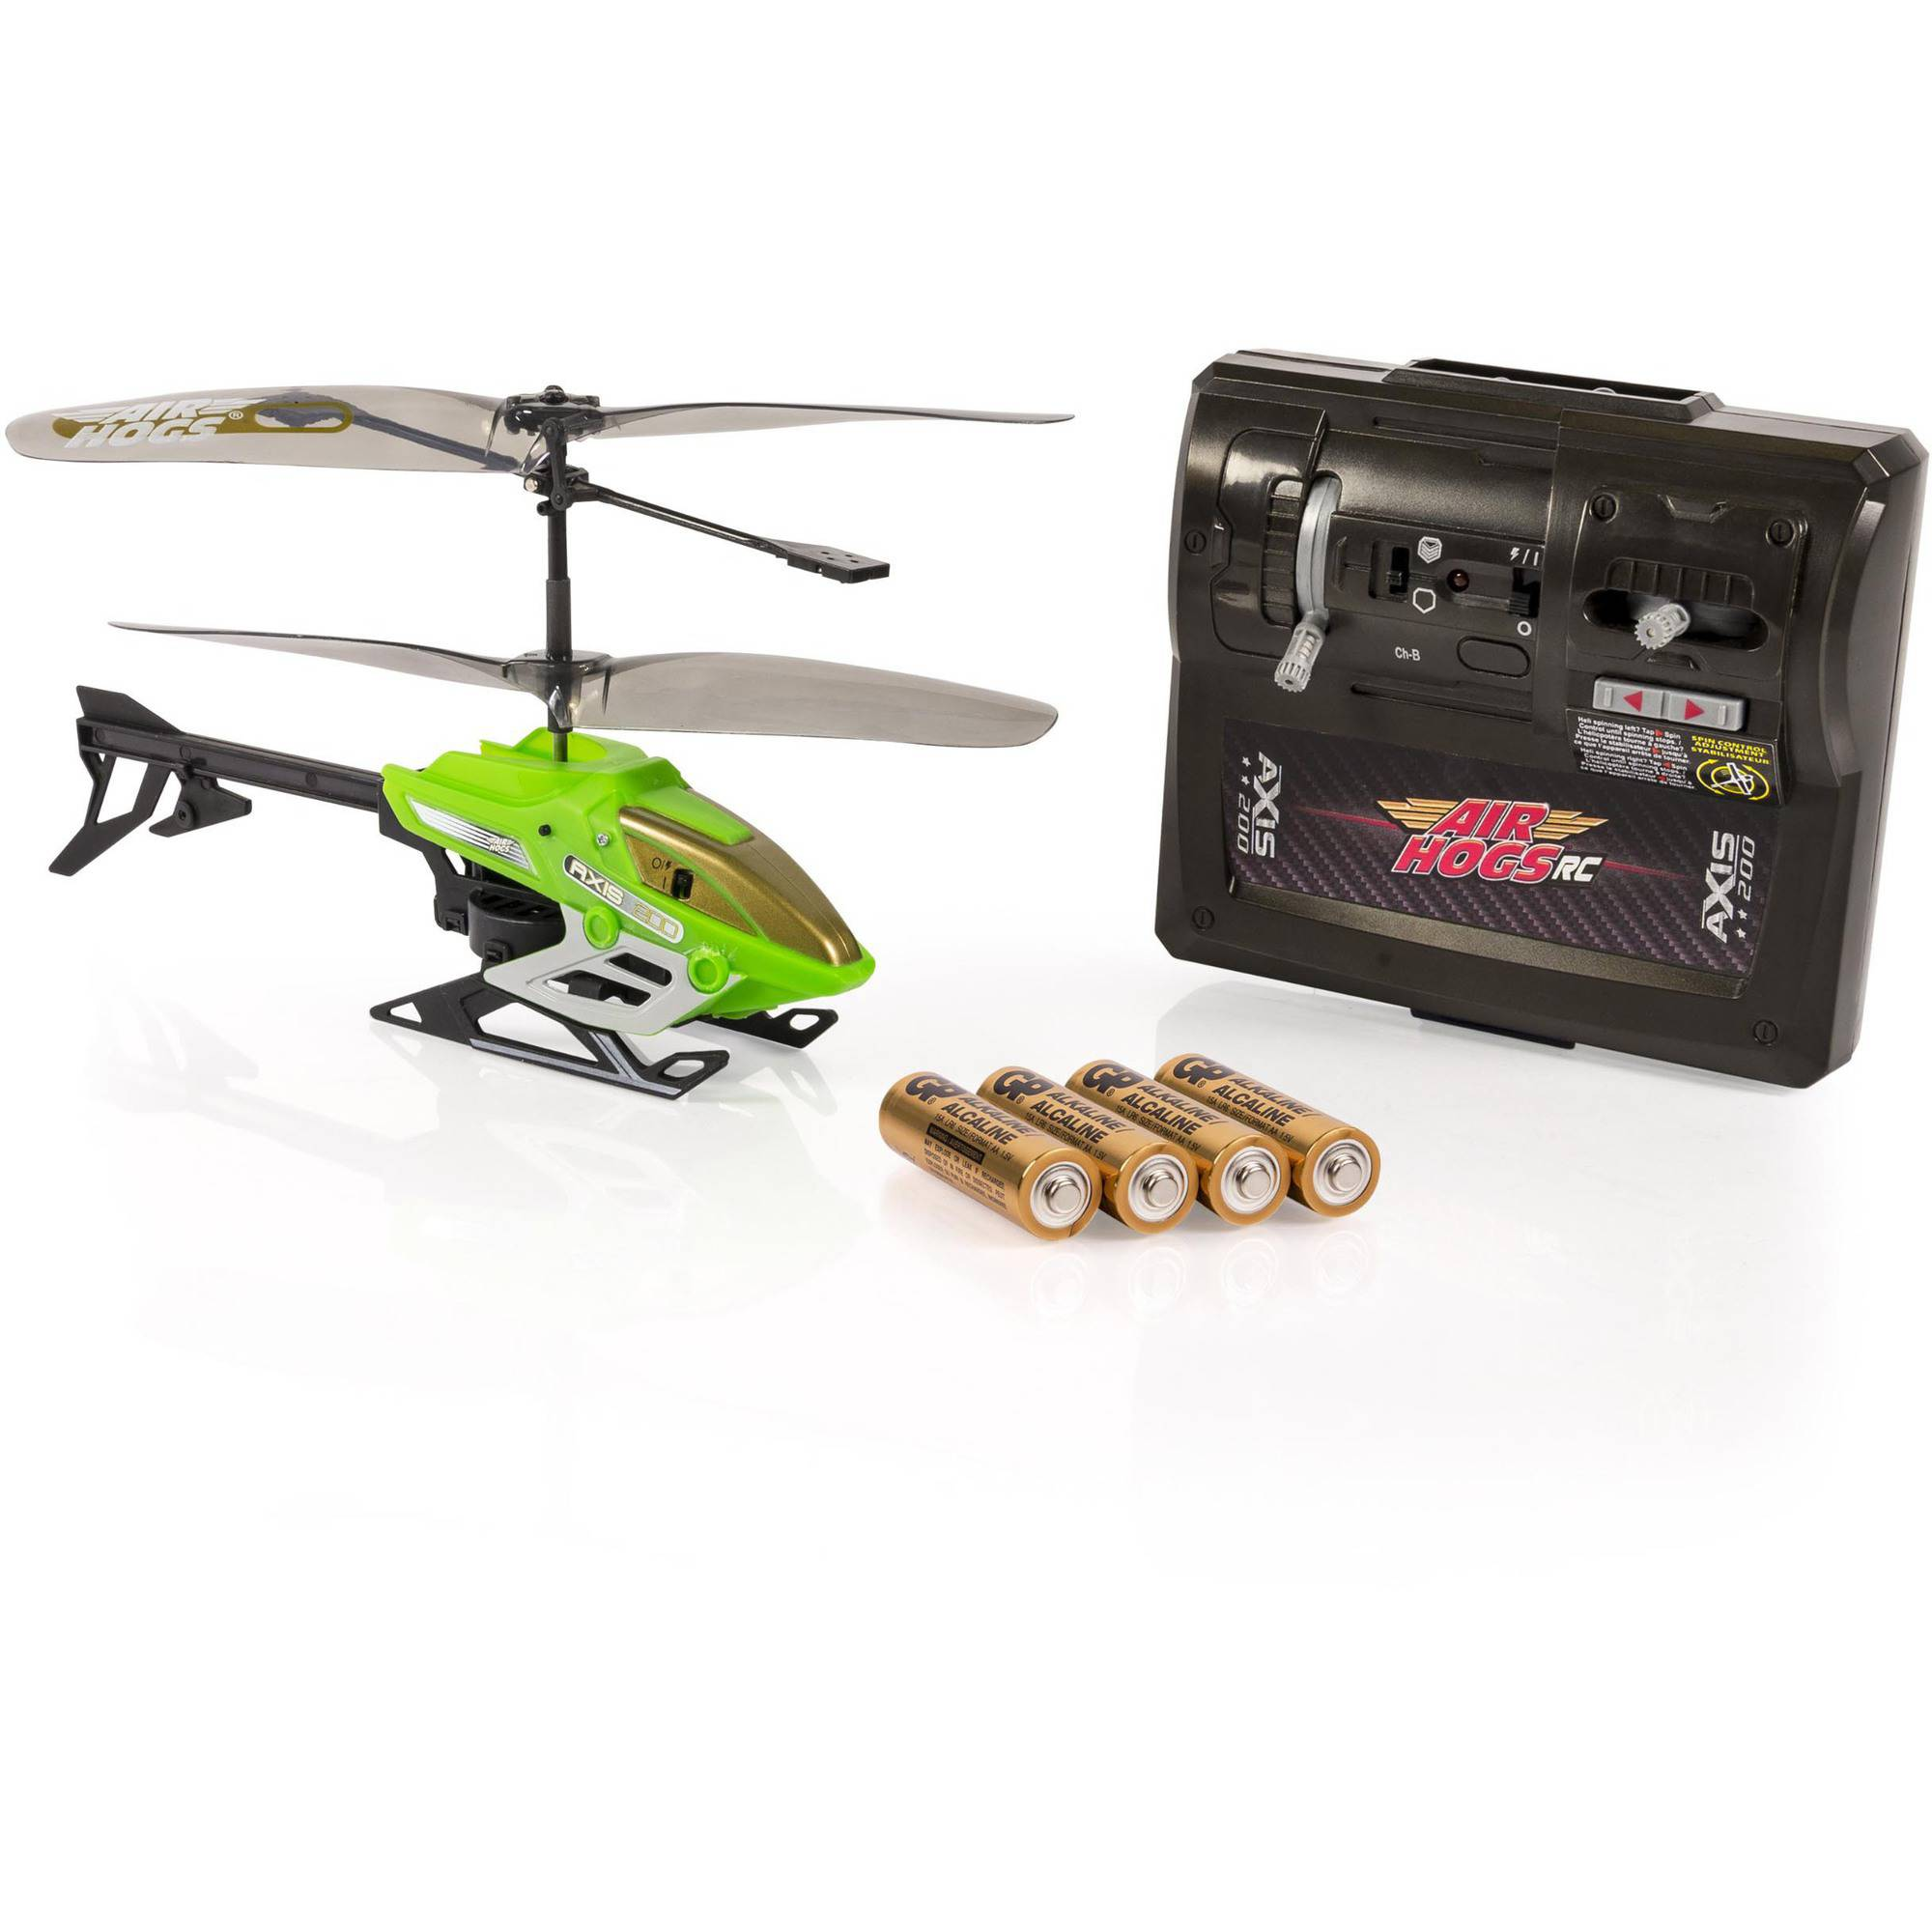 Air Hogs Axis 200 R/C Helicopter with Batteries, Green